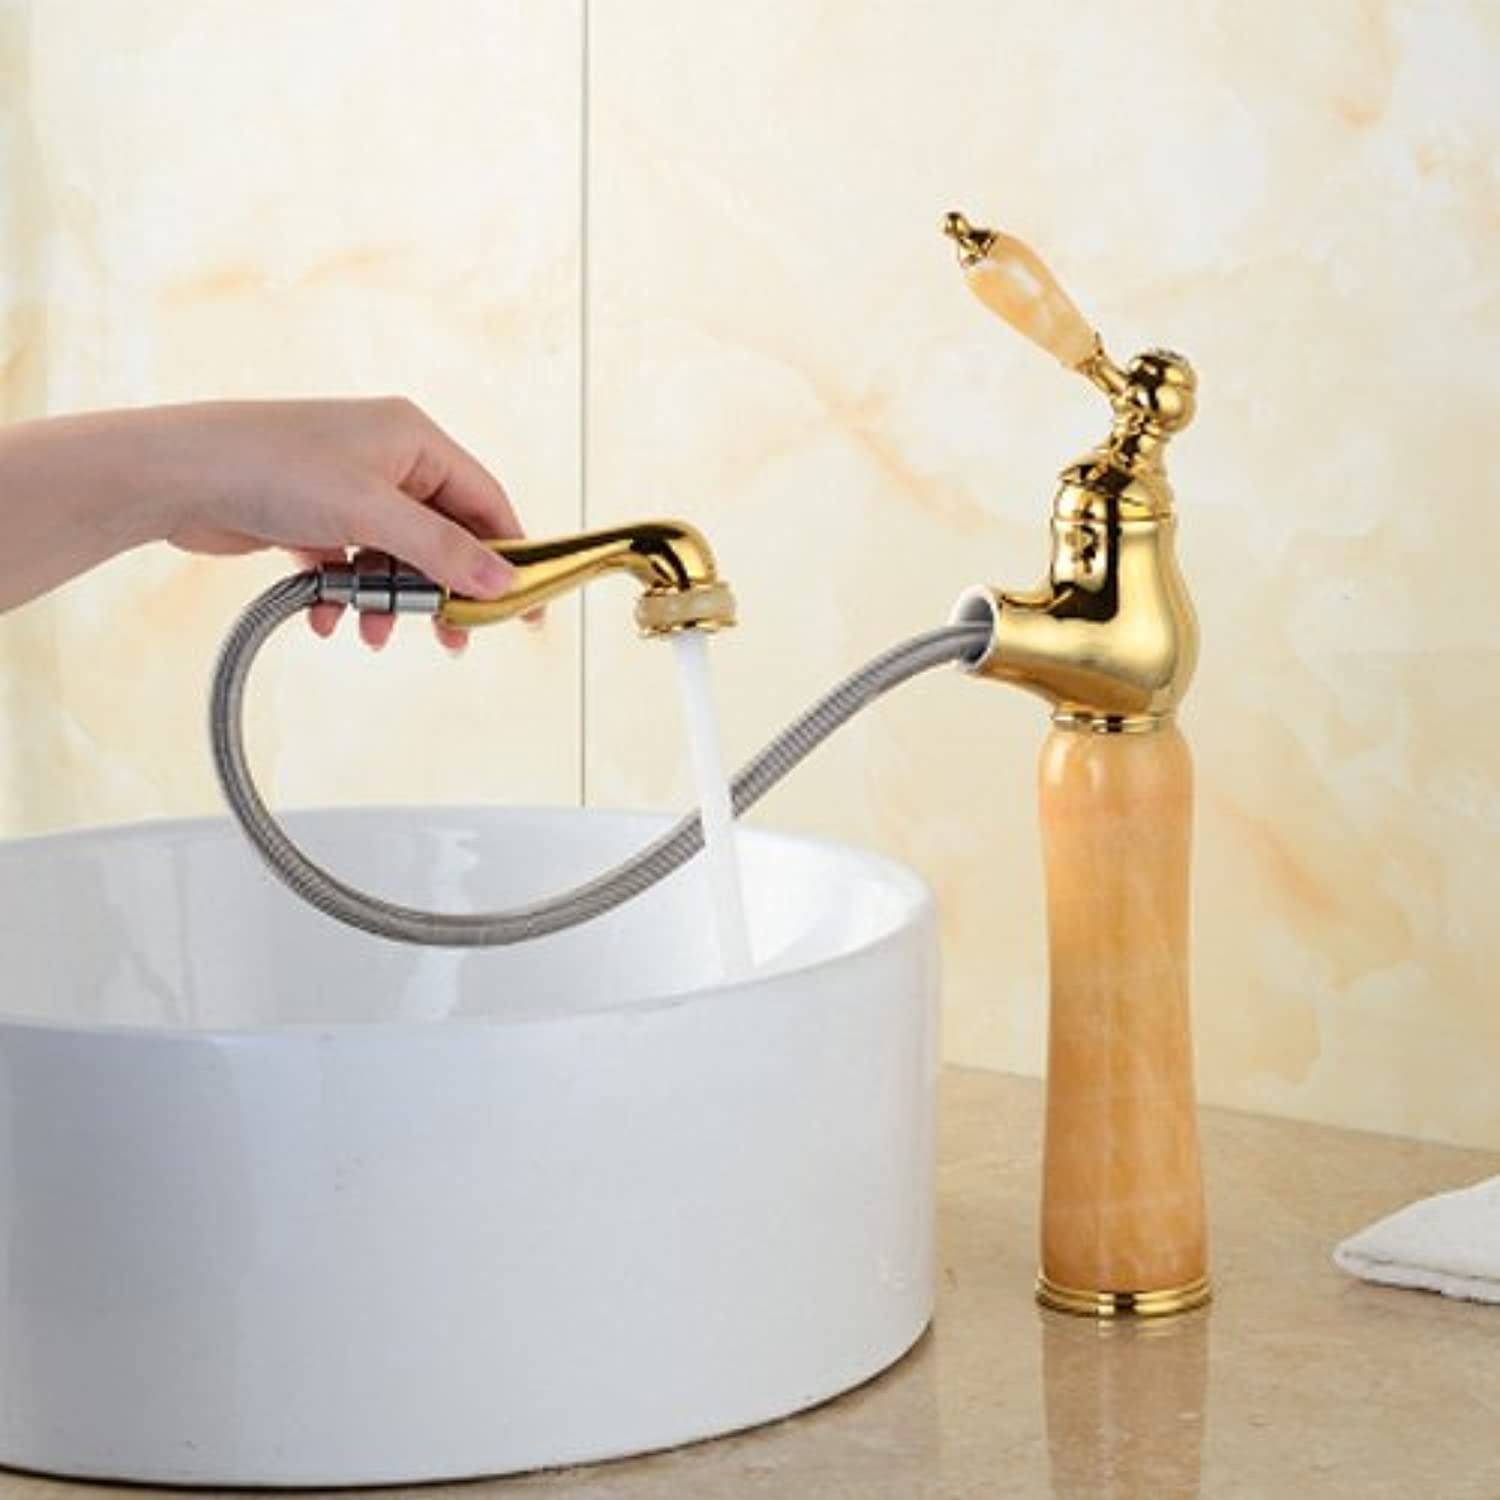 Pumpink Natural Jade Basin Hot And Cold Water Faucet American Brass European Antique Germany Copper Luxurious Noble Ceramics Grade Single Handle Single Hole Retro Mixer Tap ( Size   Tall )